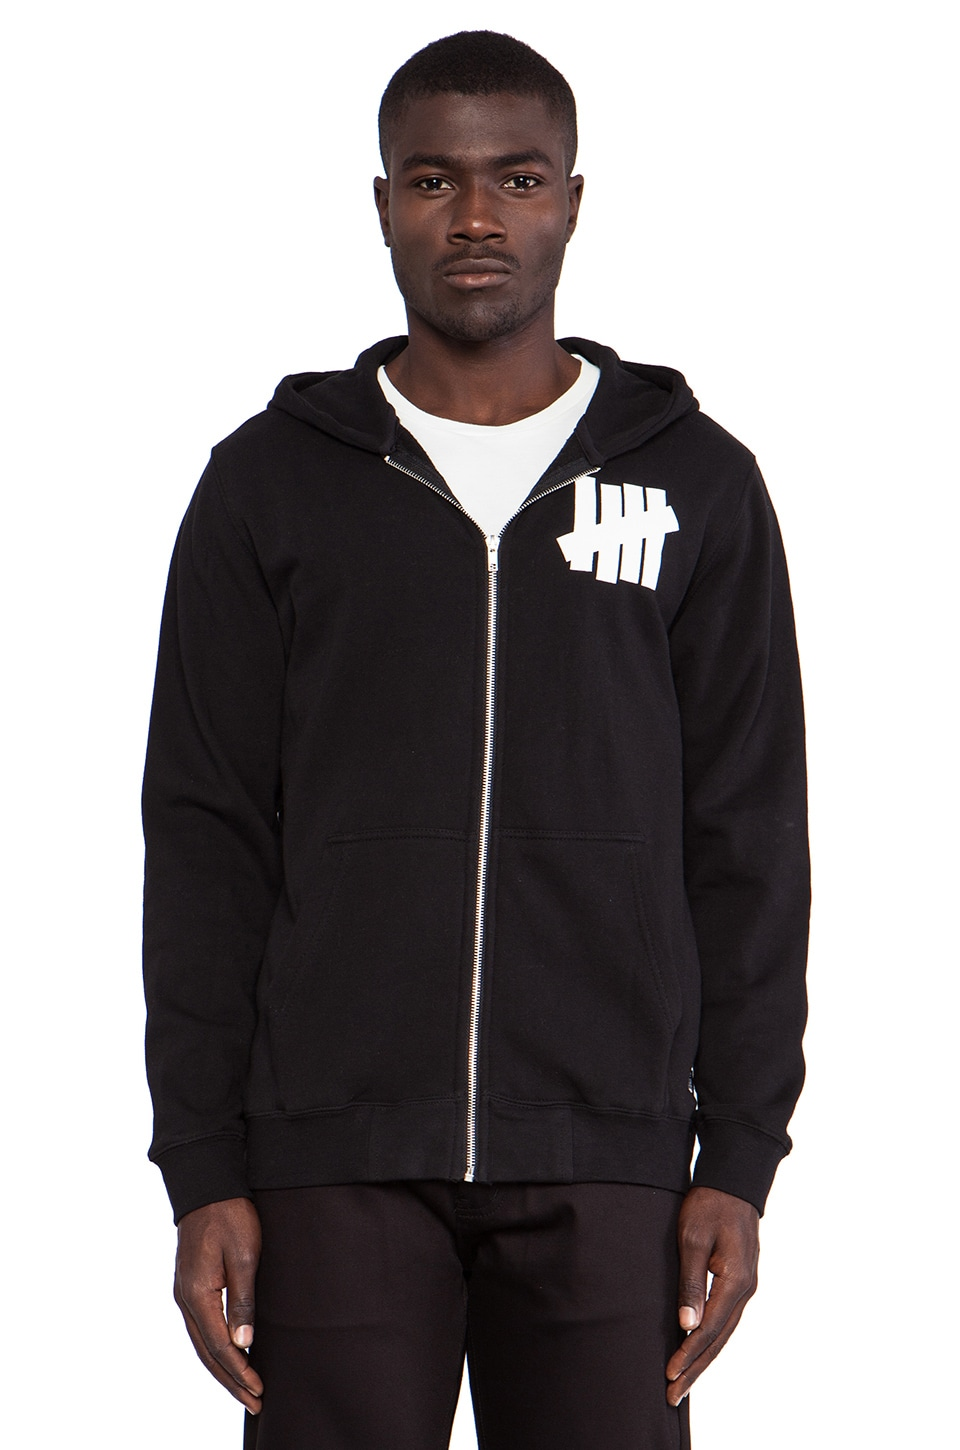 Undefeated 5 Strike Zip Up Hoody in Black